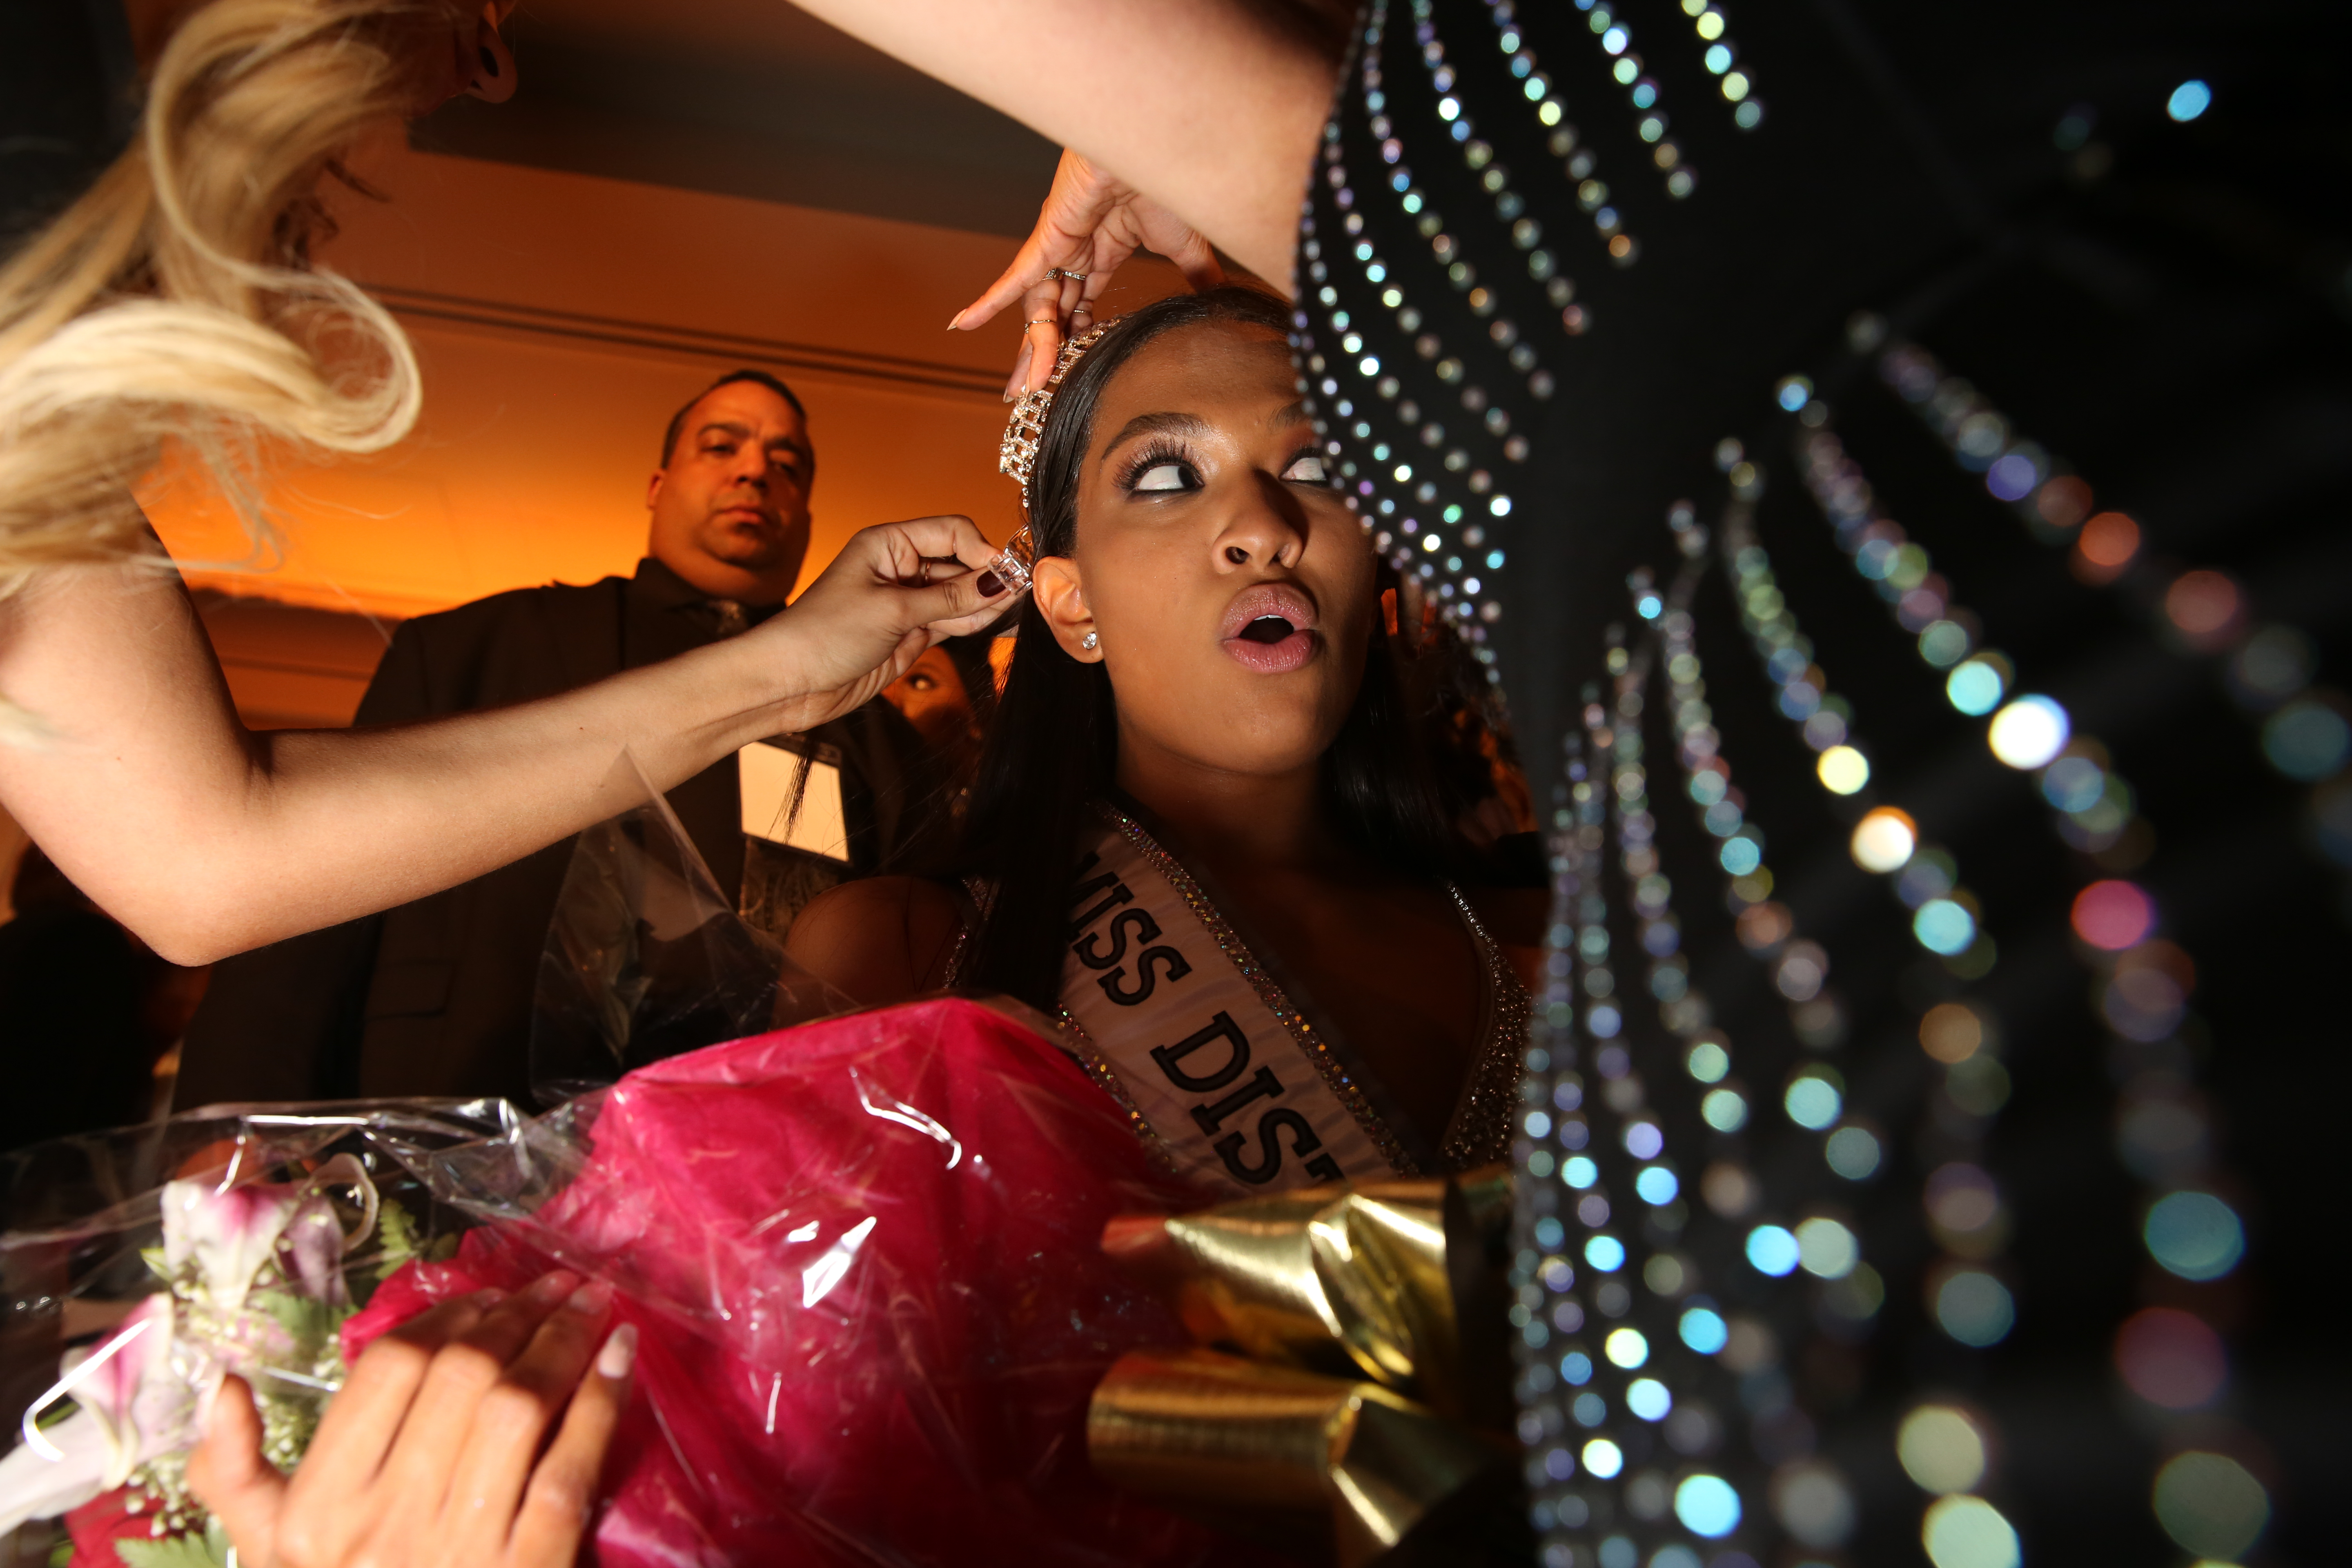 December, 2017. The newly crowned Miss D.C. USA has her tiara adjusted.{&amp;nbsp;} (Amanda Andrade-Rhoades/DC Refined)<p></p>